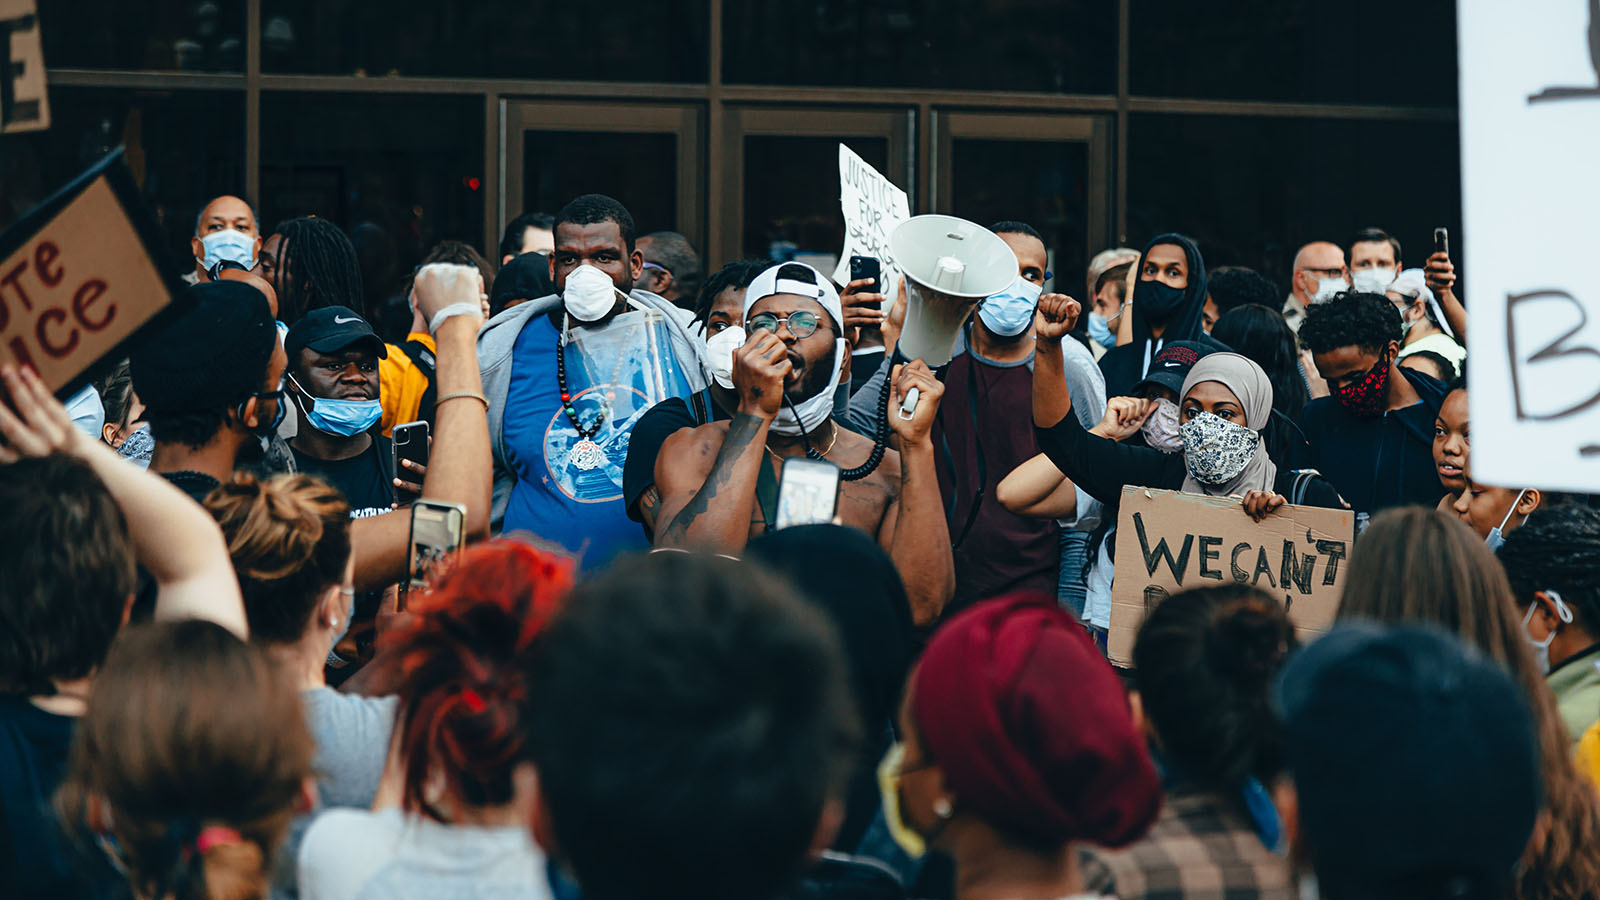 Activist for racial justice surrounded by protesters with protective masks and signs.